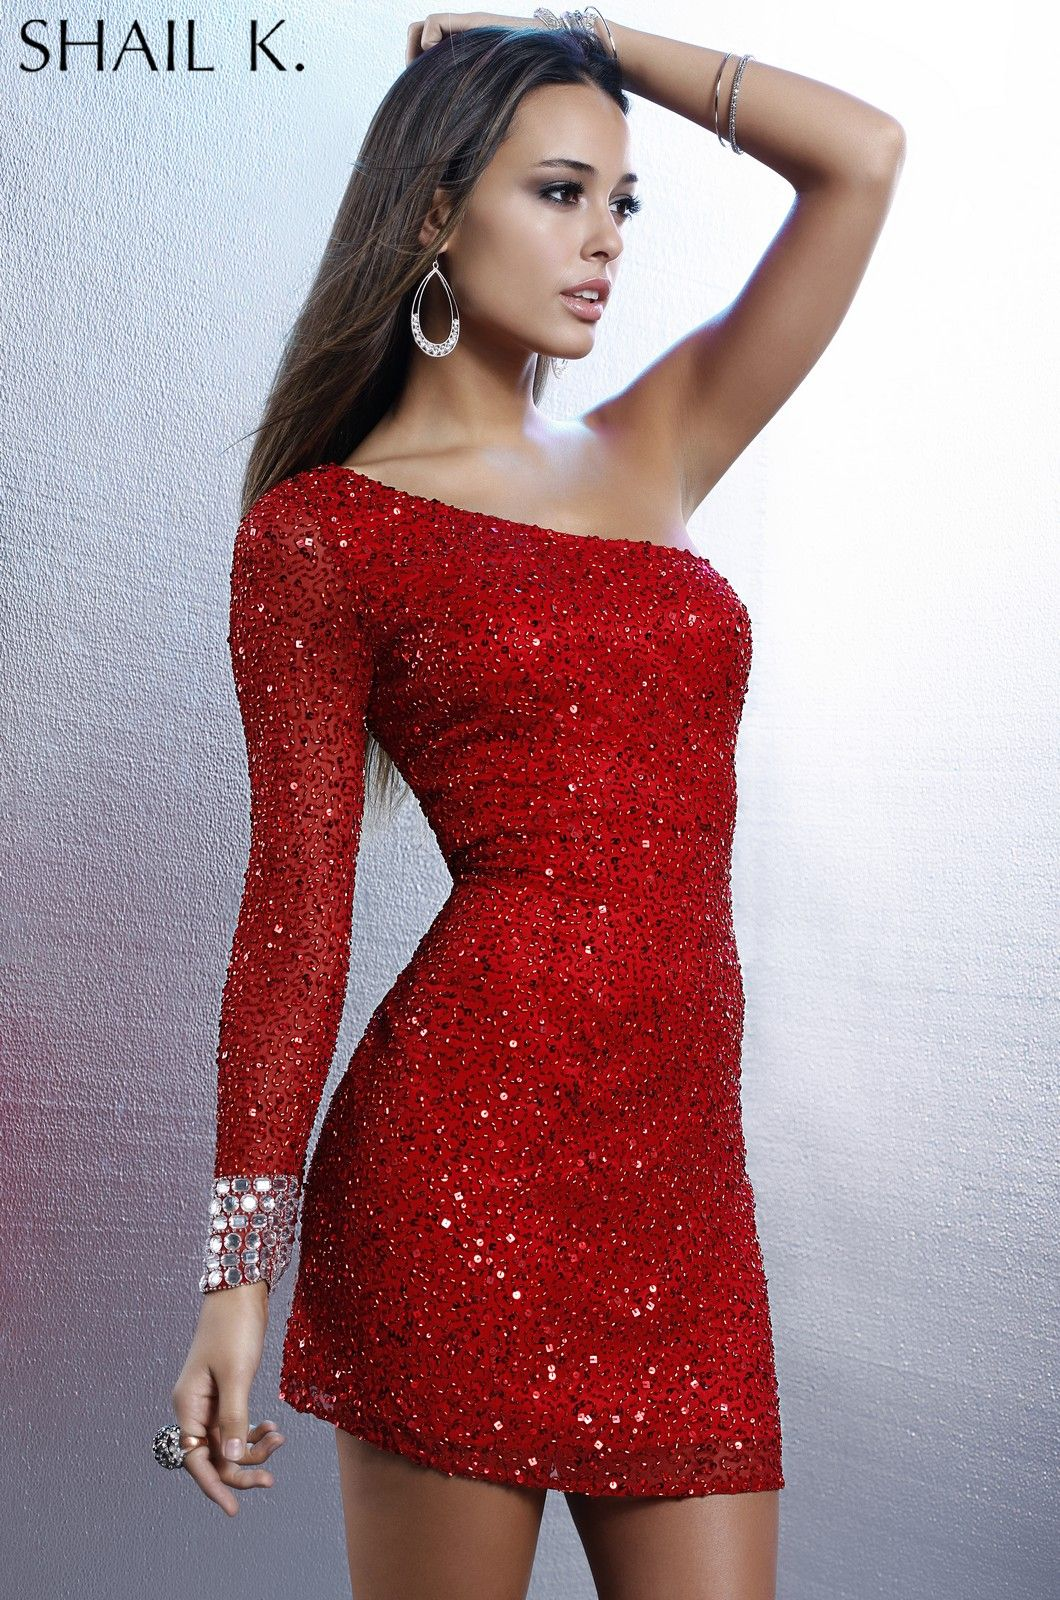 Evening dressescocktail partydresses by shail knight to